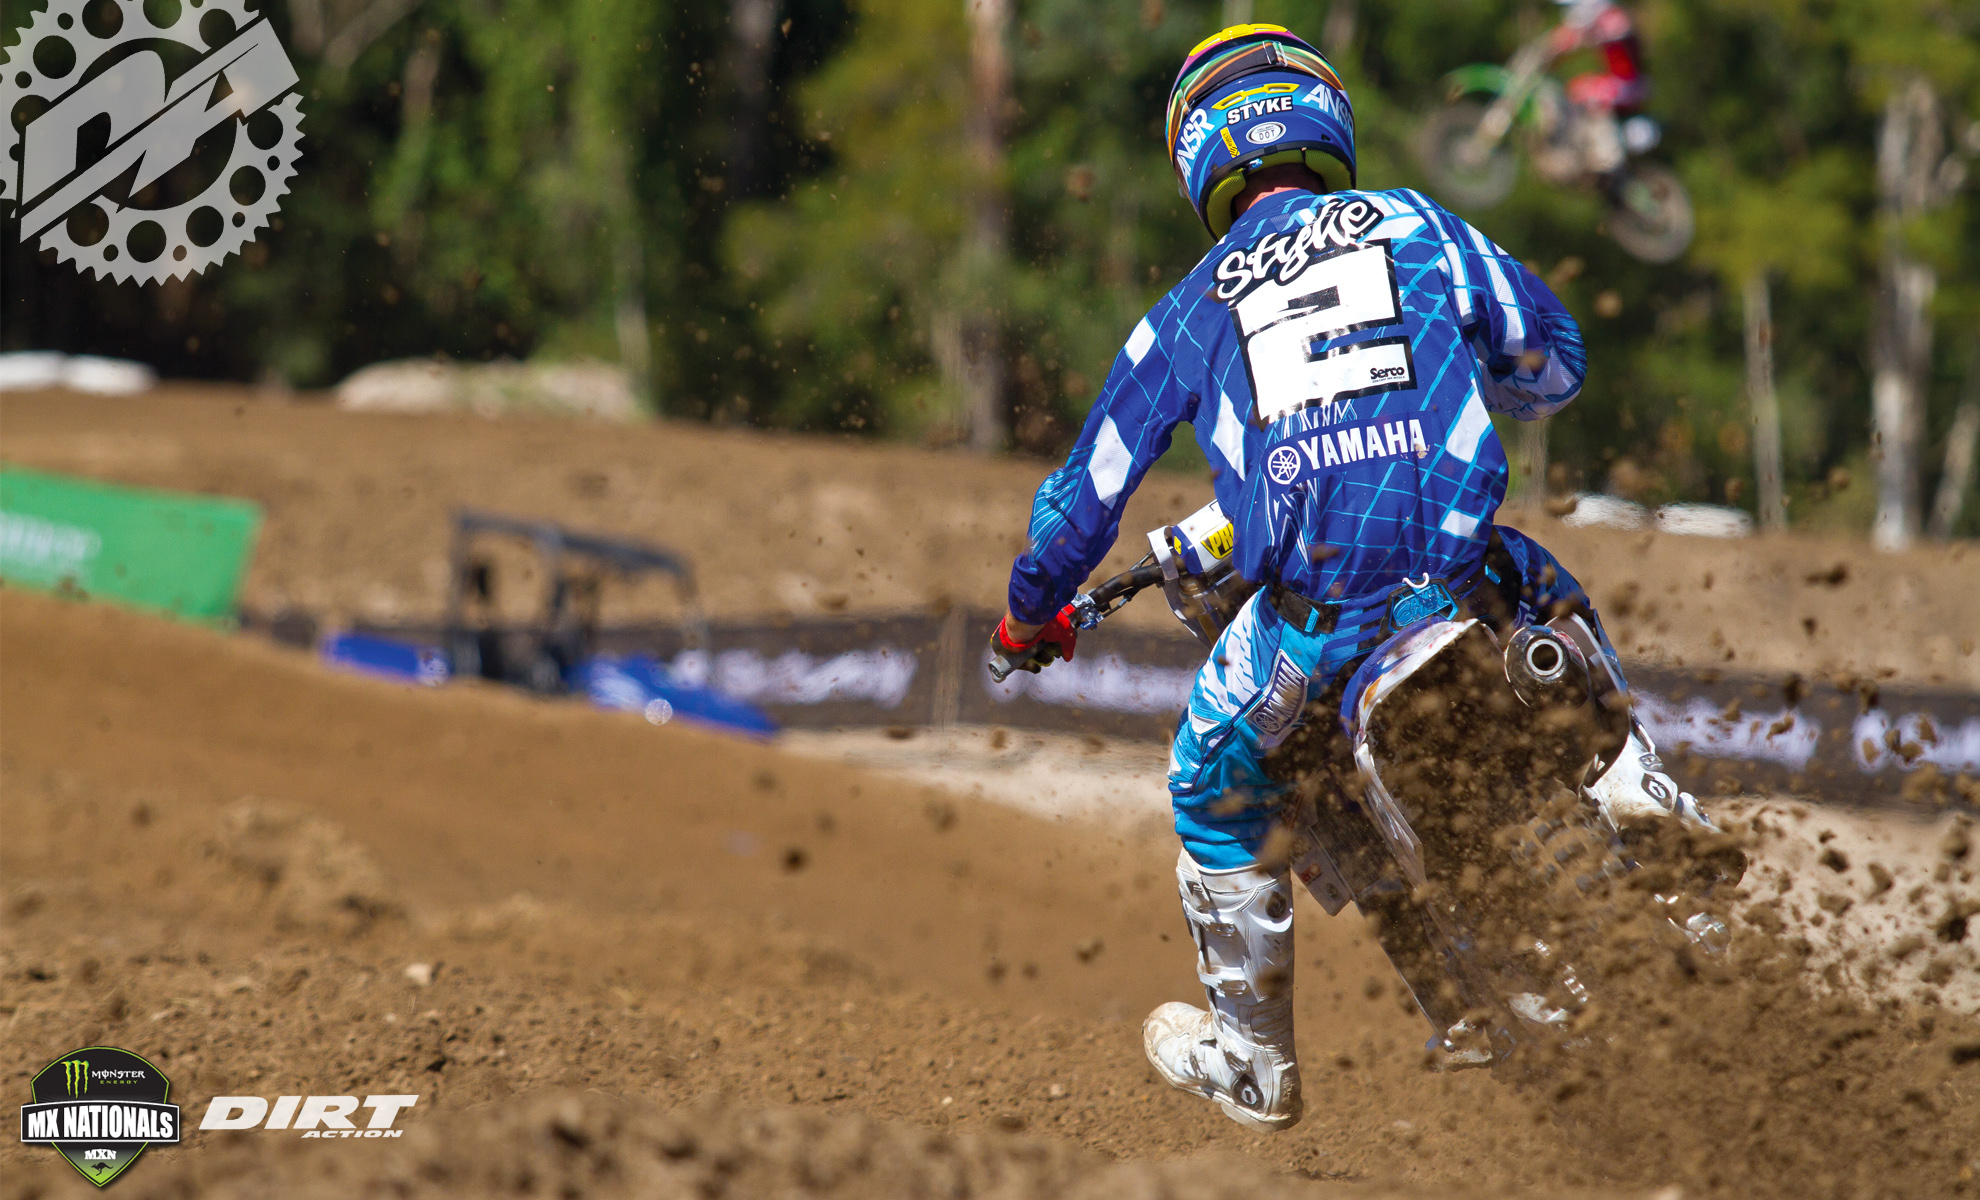 Photo: DIRT ACTION magazine